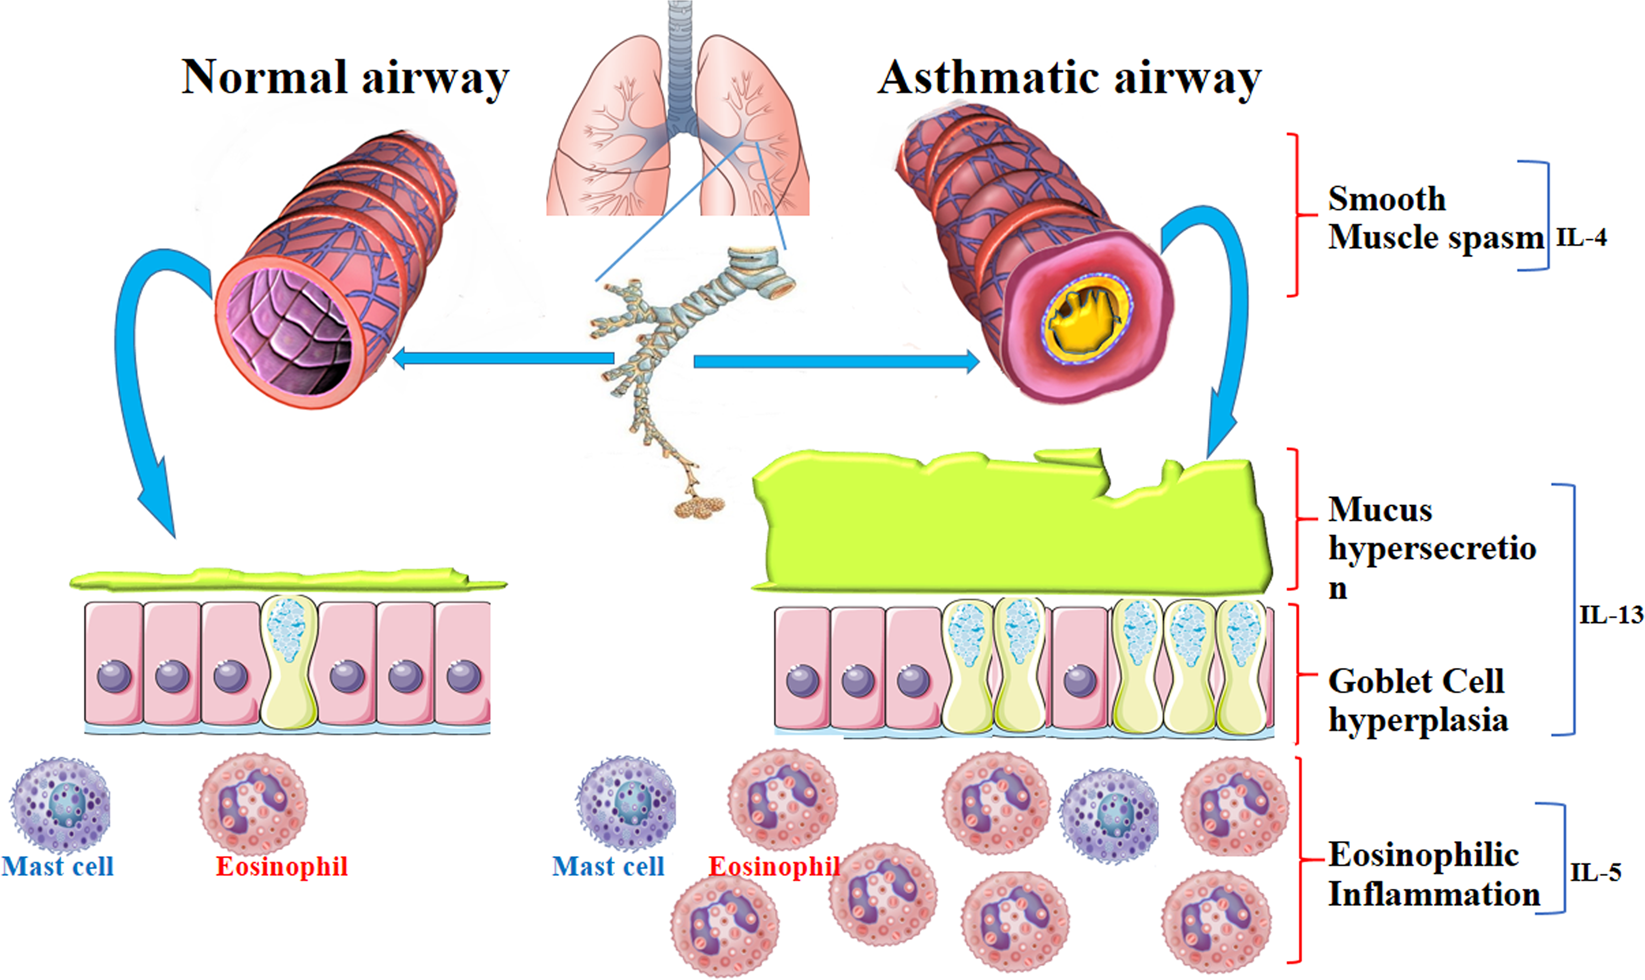 Targeting cell signaling in allergic asthma.